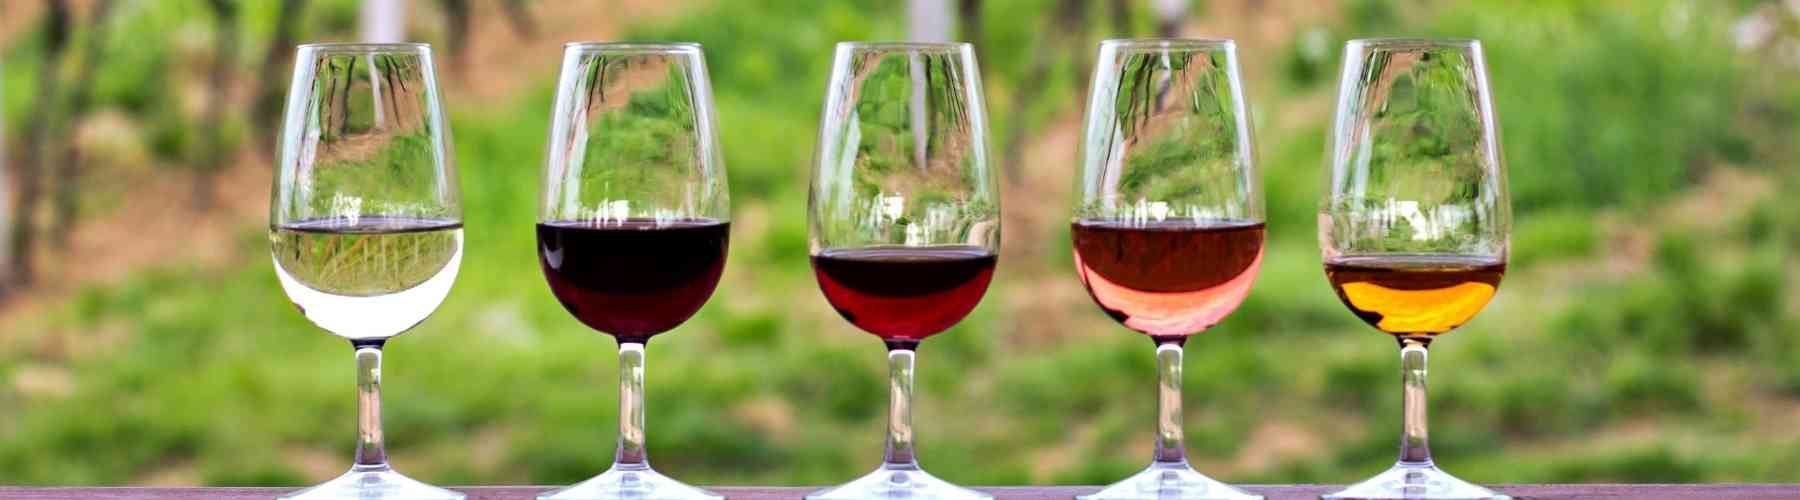 Crafts to Make and Sell - Wine Glasses